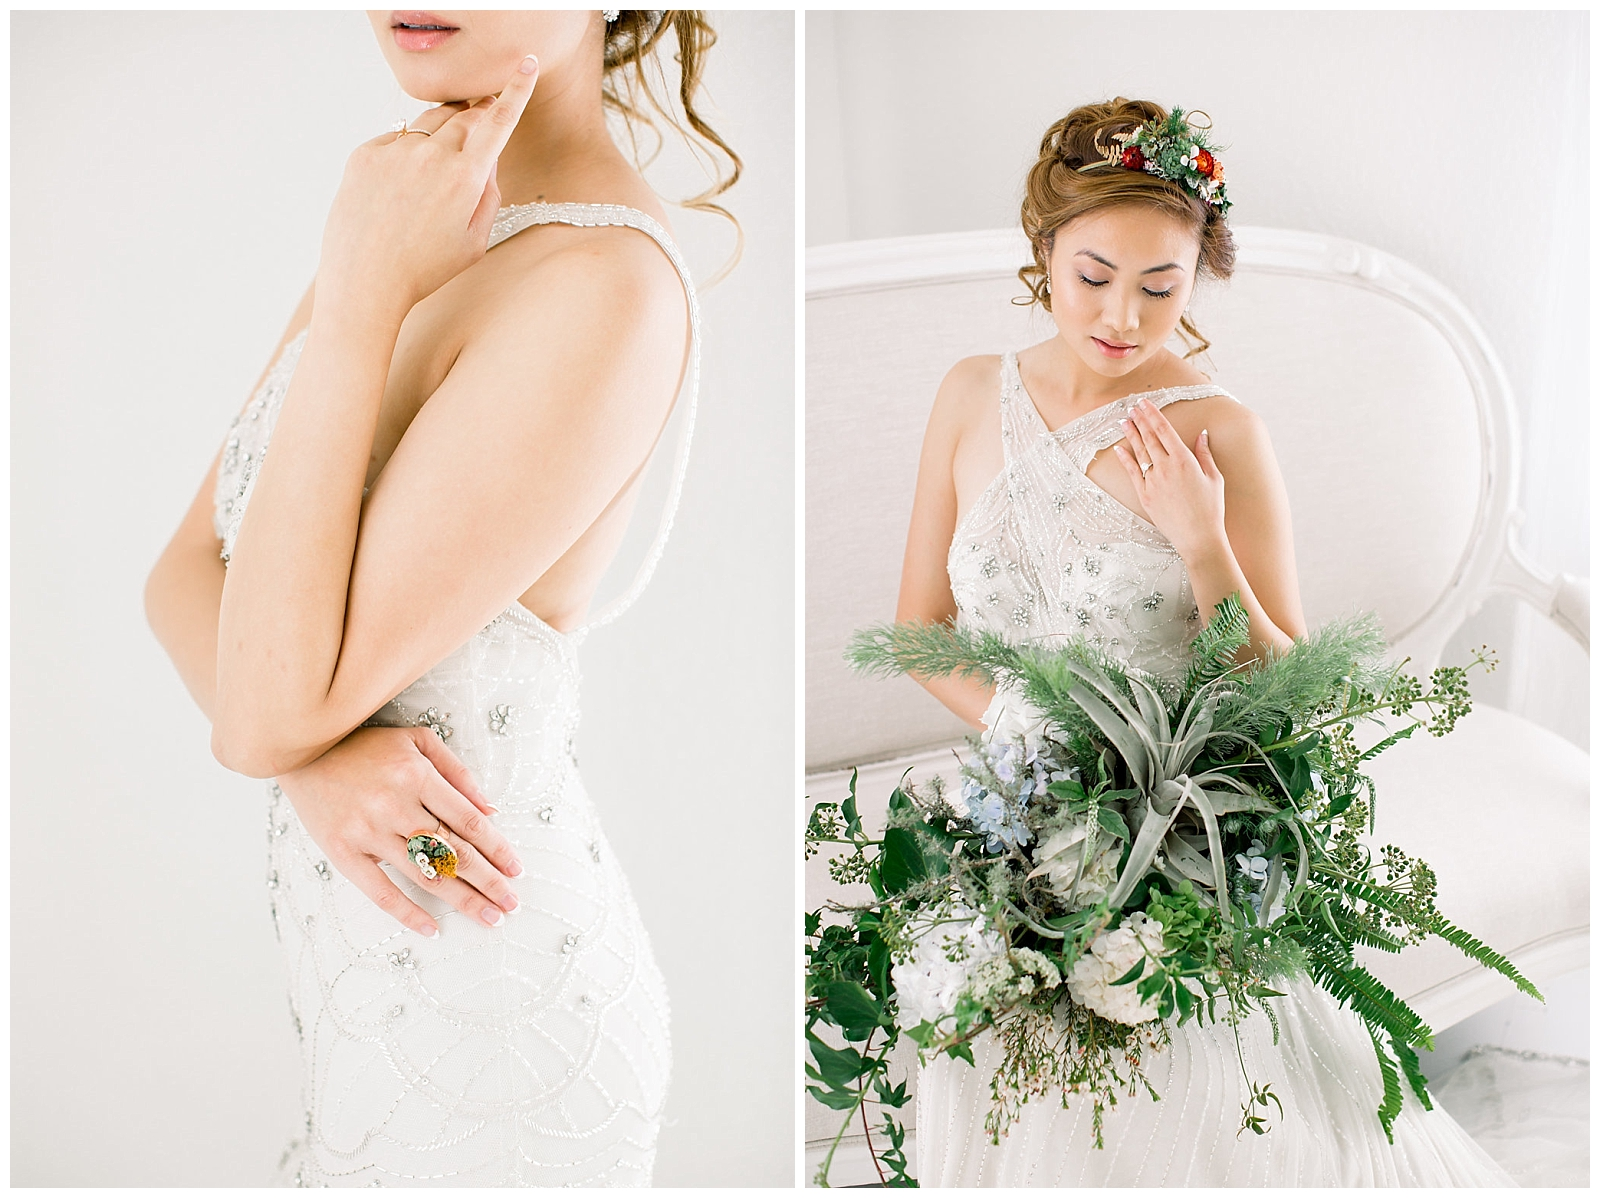 Living-Accessories-styled-shoot-de-joy-photography-epiphany-boutique-bridal-pose.jpg